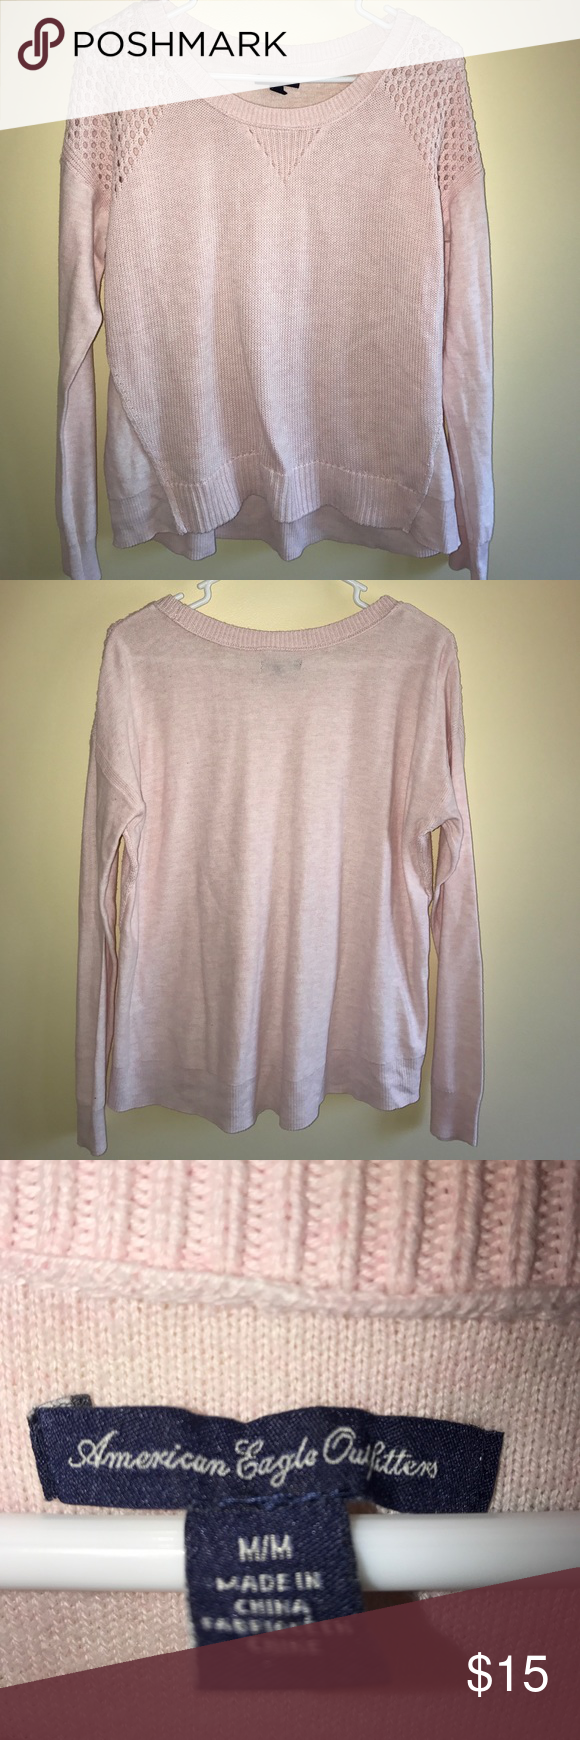 American Eagle Woman's Sweater Size Medium American Eagle Woman's size medium sweater. Light pink. Excellent condition. American Eagle Outfitters Sweaters Crew & Scoop Necks